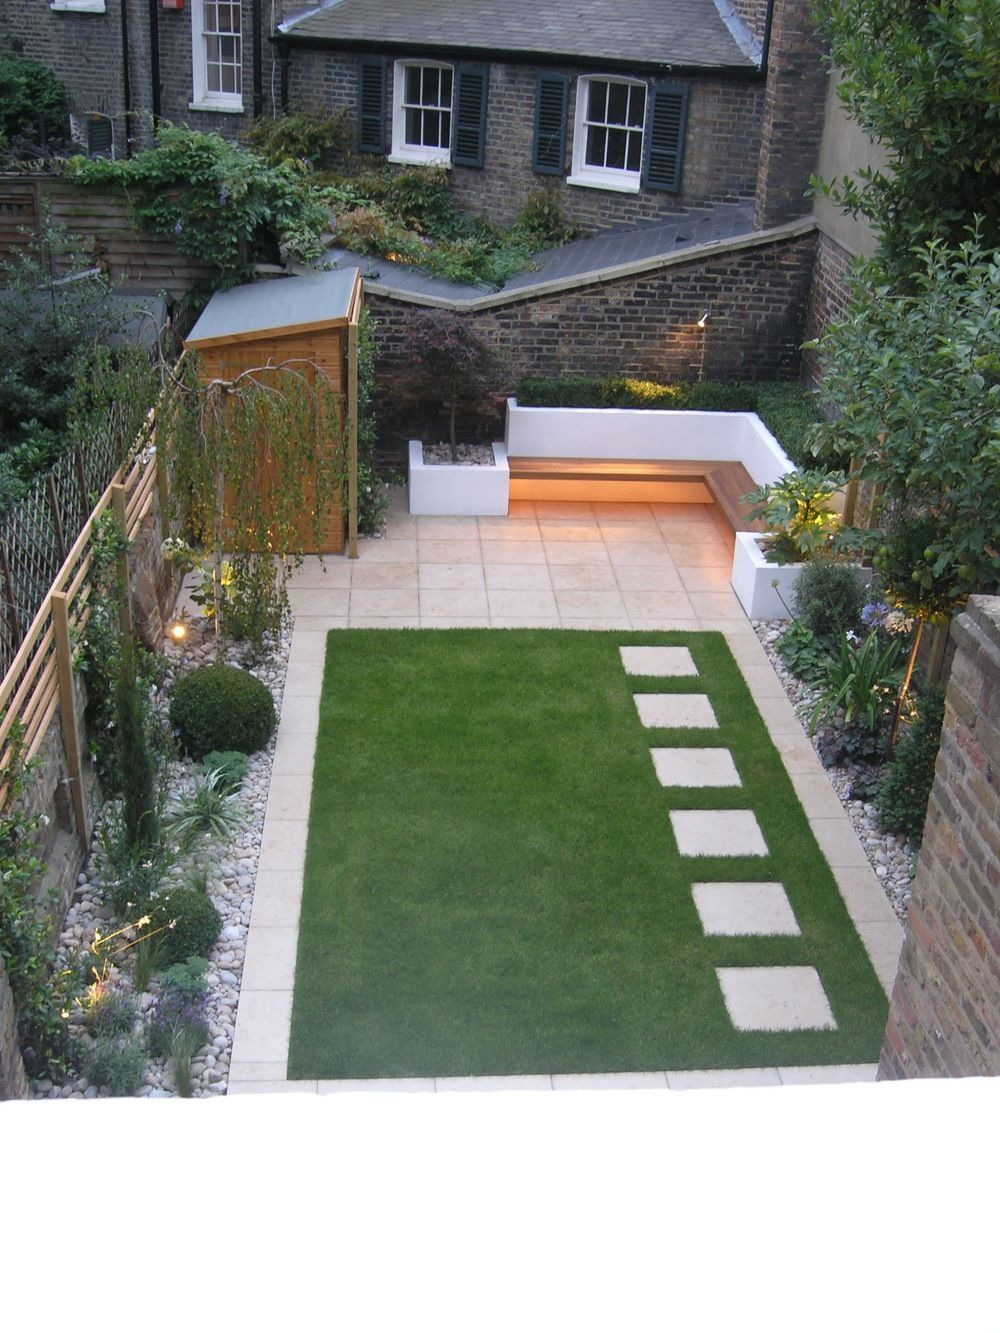 simple garden ideas 9 ideas for small, cheap and low maintenance gardens #low #ideas #small MLFRIOK